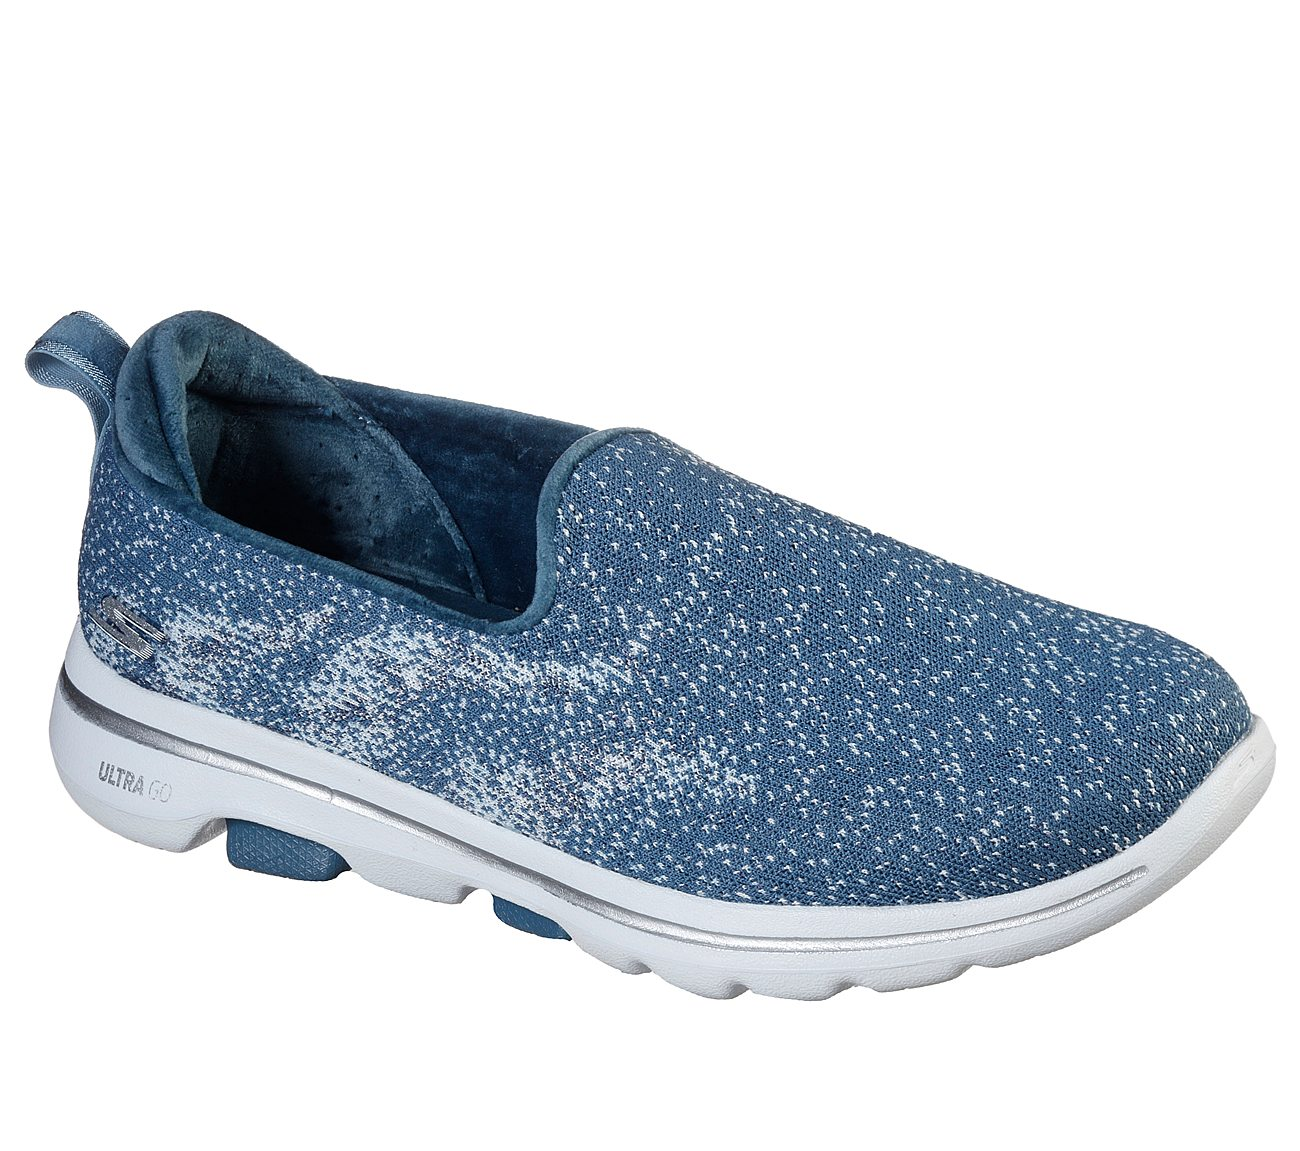 Skechers GOwalk 5 - So Soft